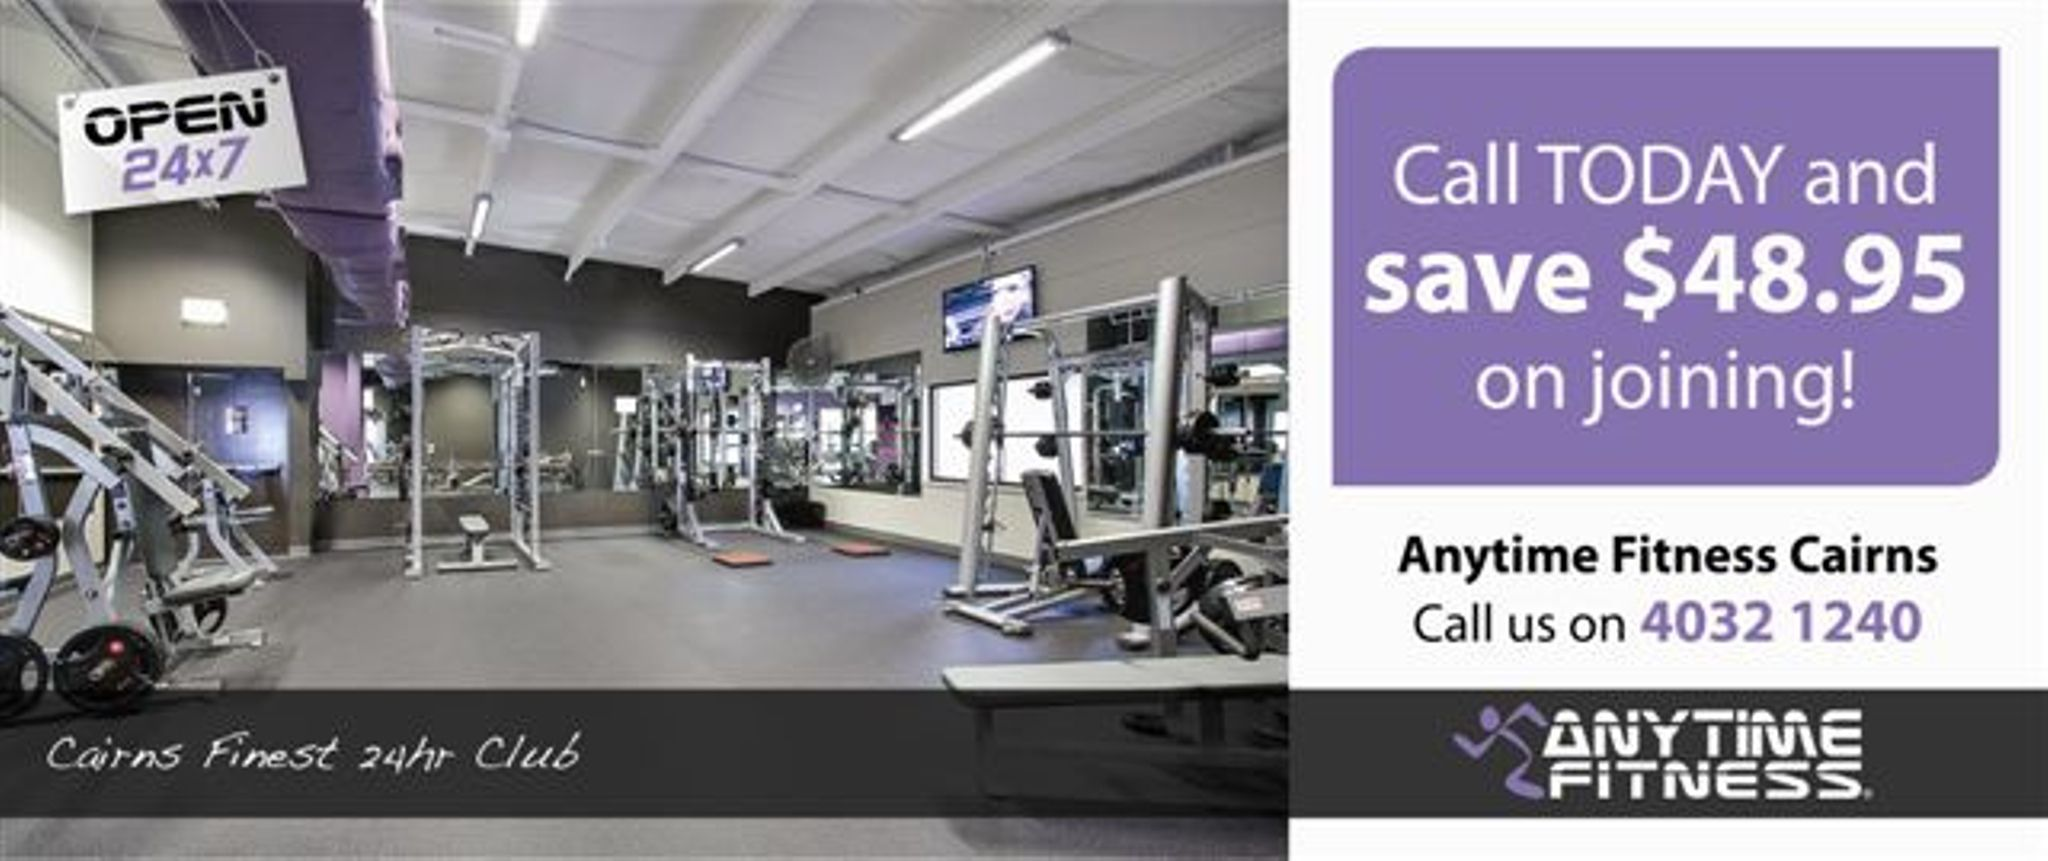 Pin by John on fitness | Anytime fitness, No equipment